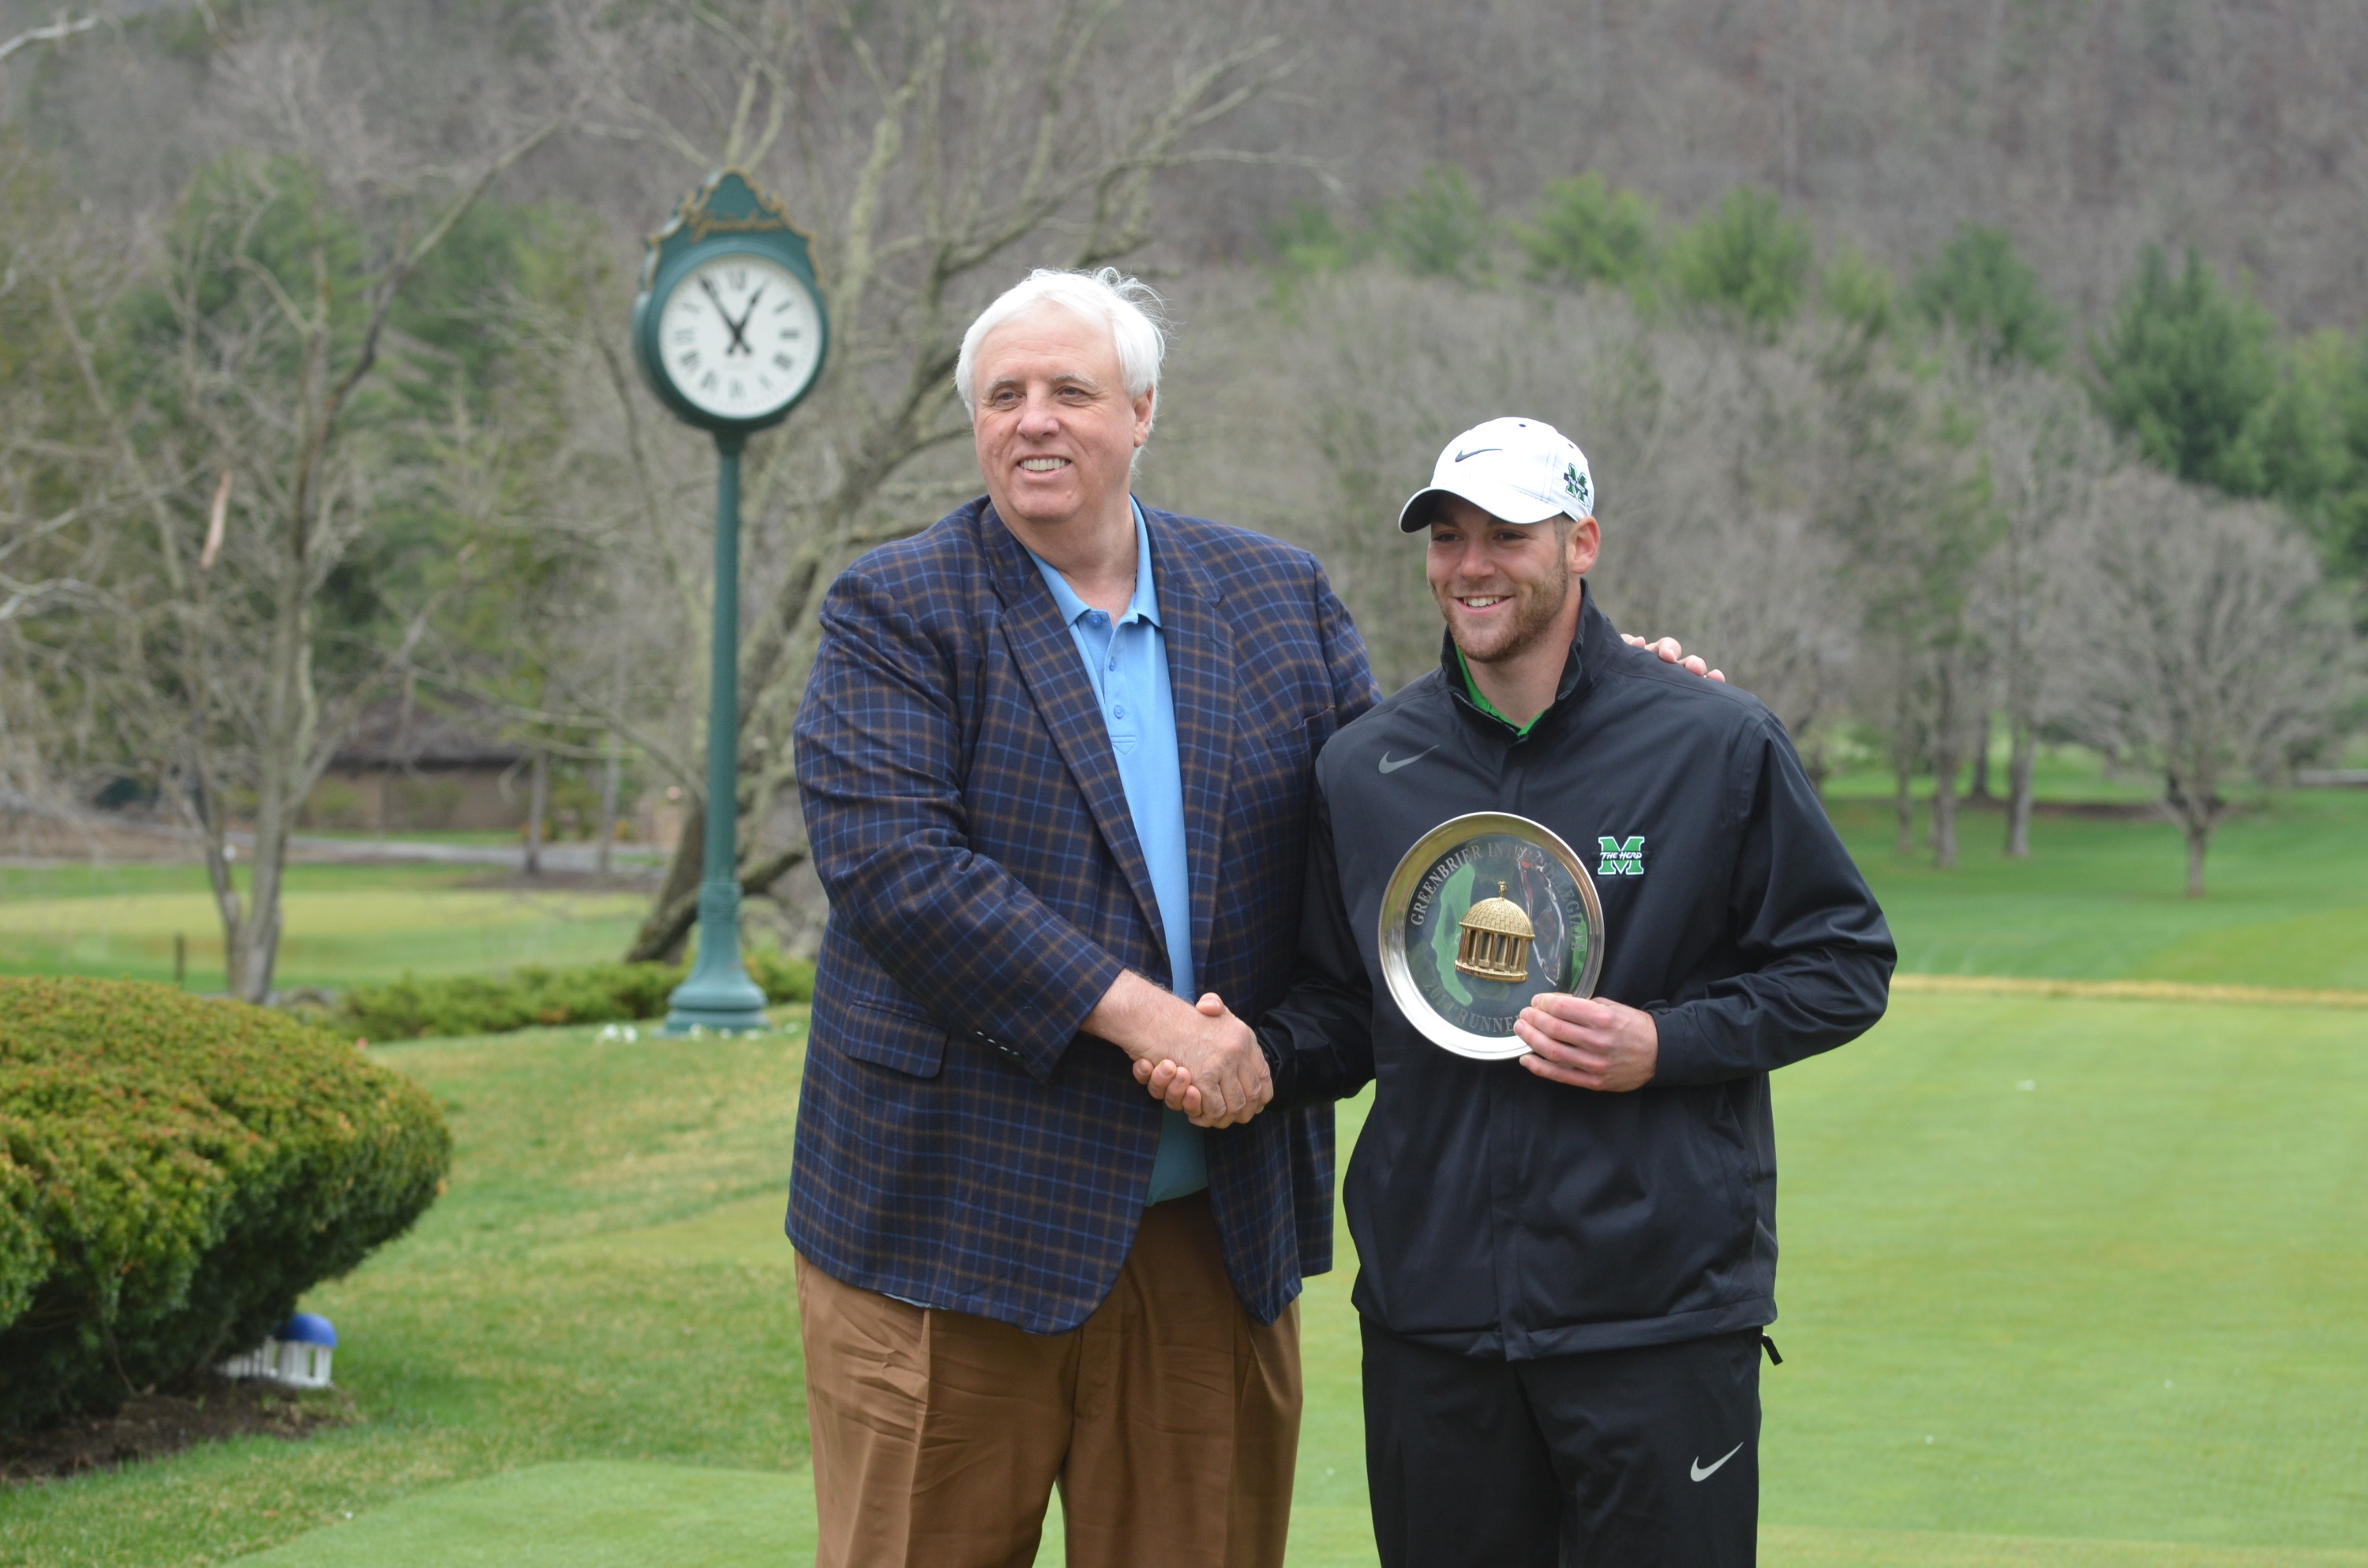 Lagodich finished as runner-up at the 2013-14 Greenbrier Collegiate Invitational.